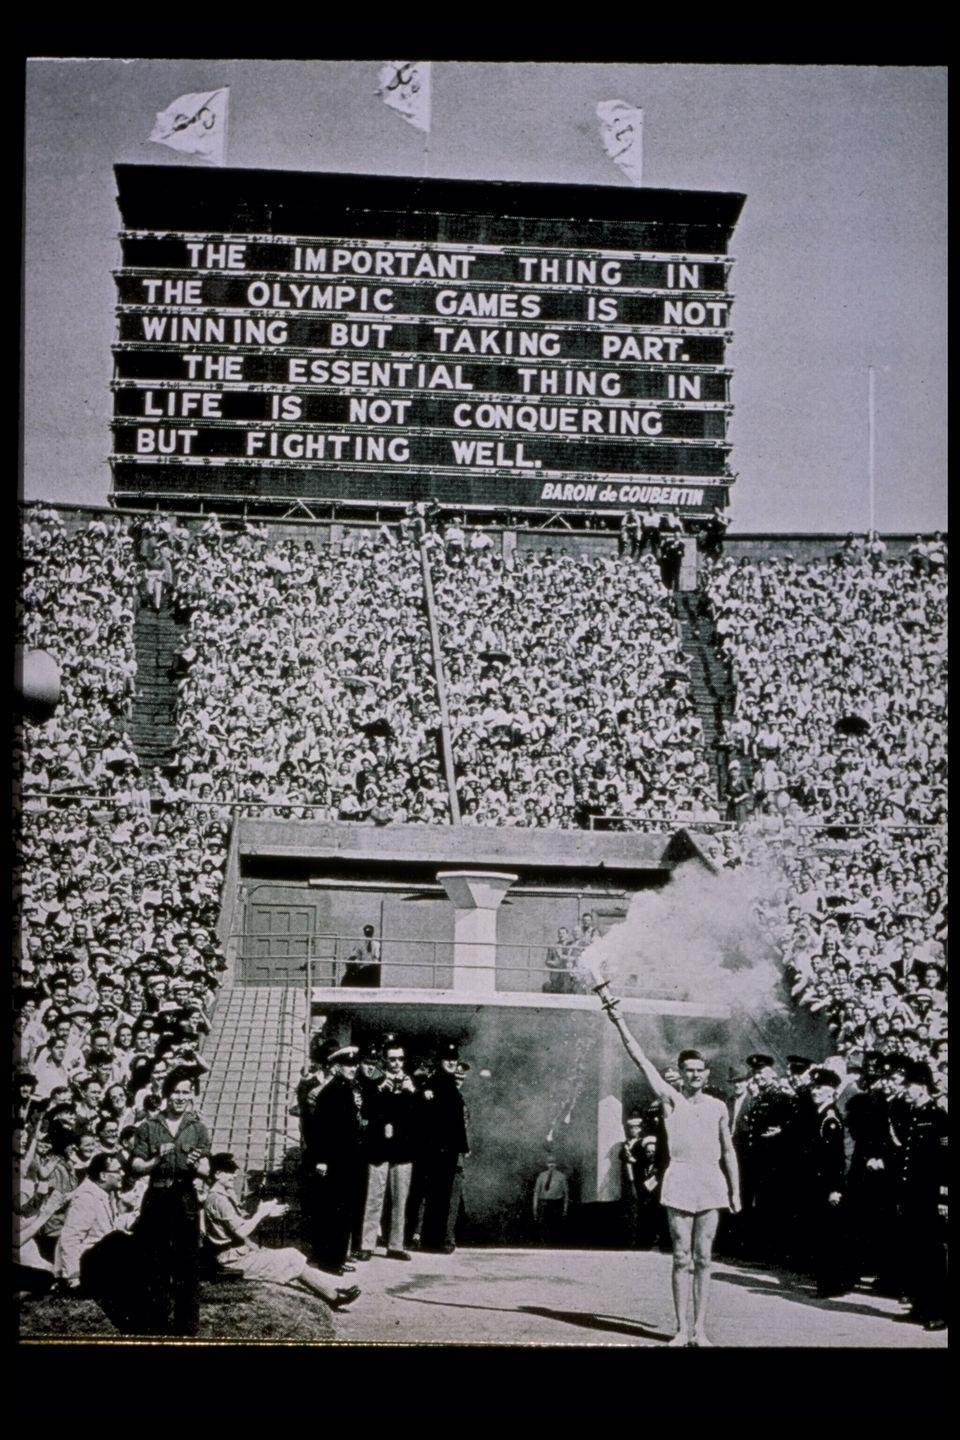 <p>When hosting the Summer Olympic Games in 1948, England decided to display an encouraging quote from French educator and historian Pierre de Coubertin (who was also the founder of the International Olympic Committee). The sign made for a dramatic photo op as the Olympic torch arrived in the stadium. </p>